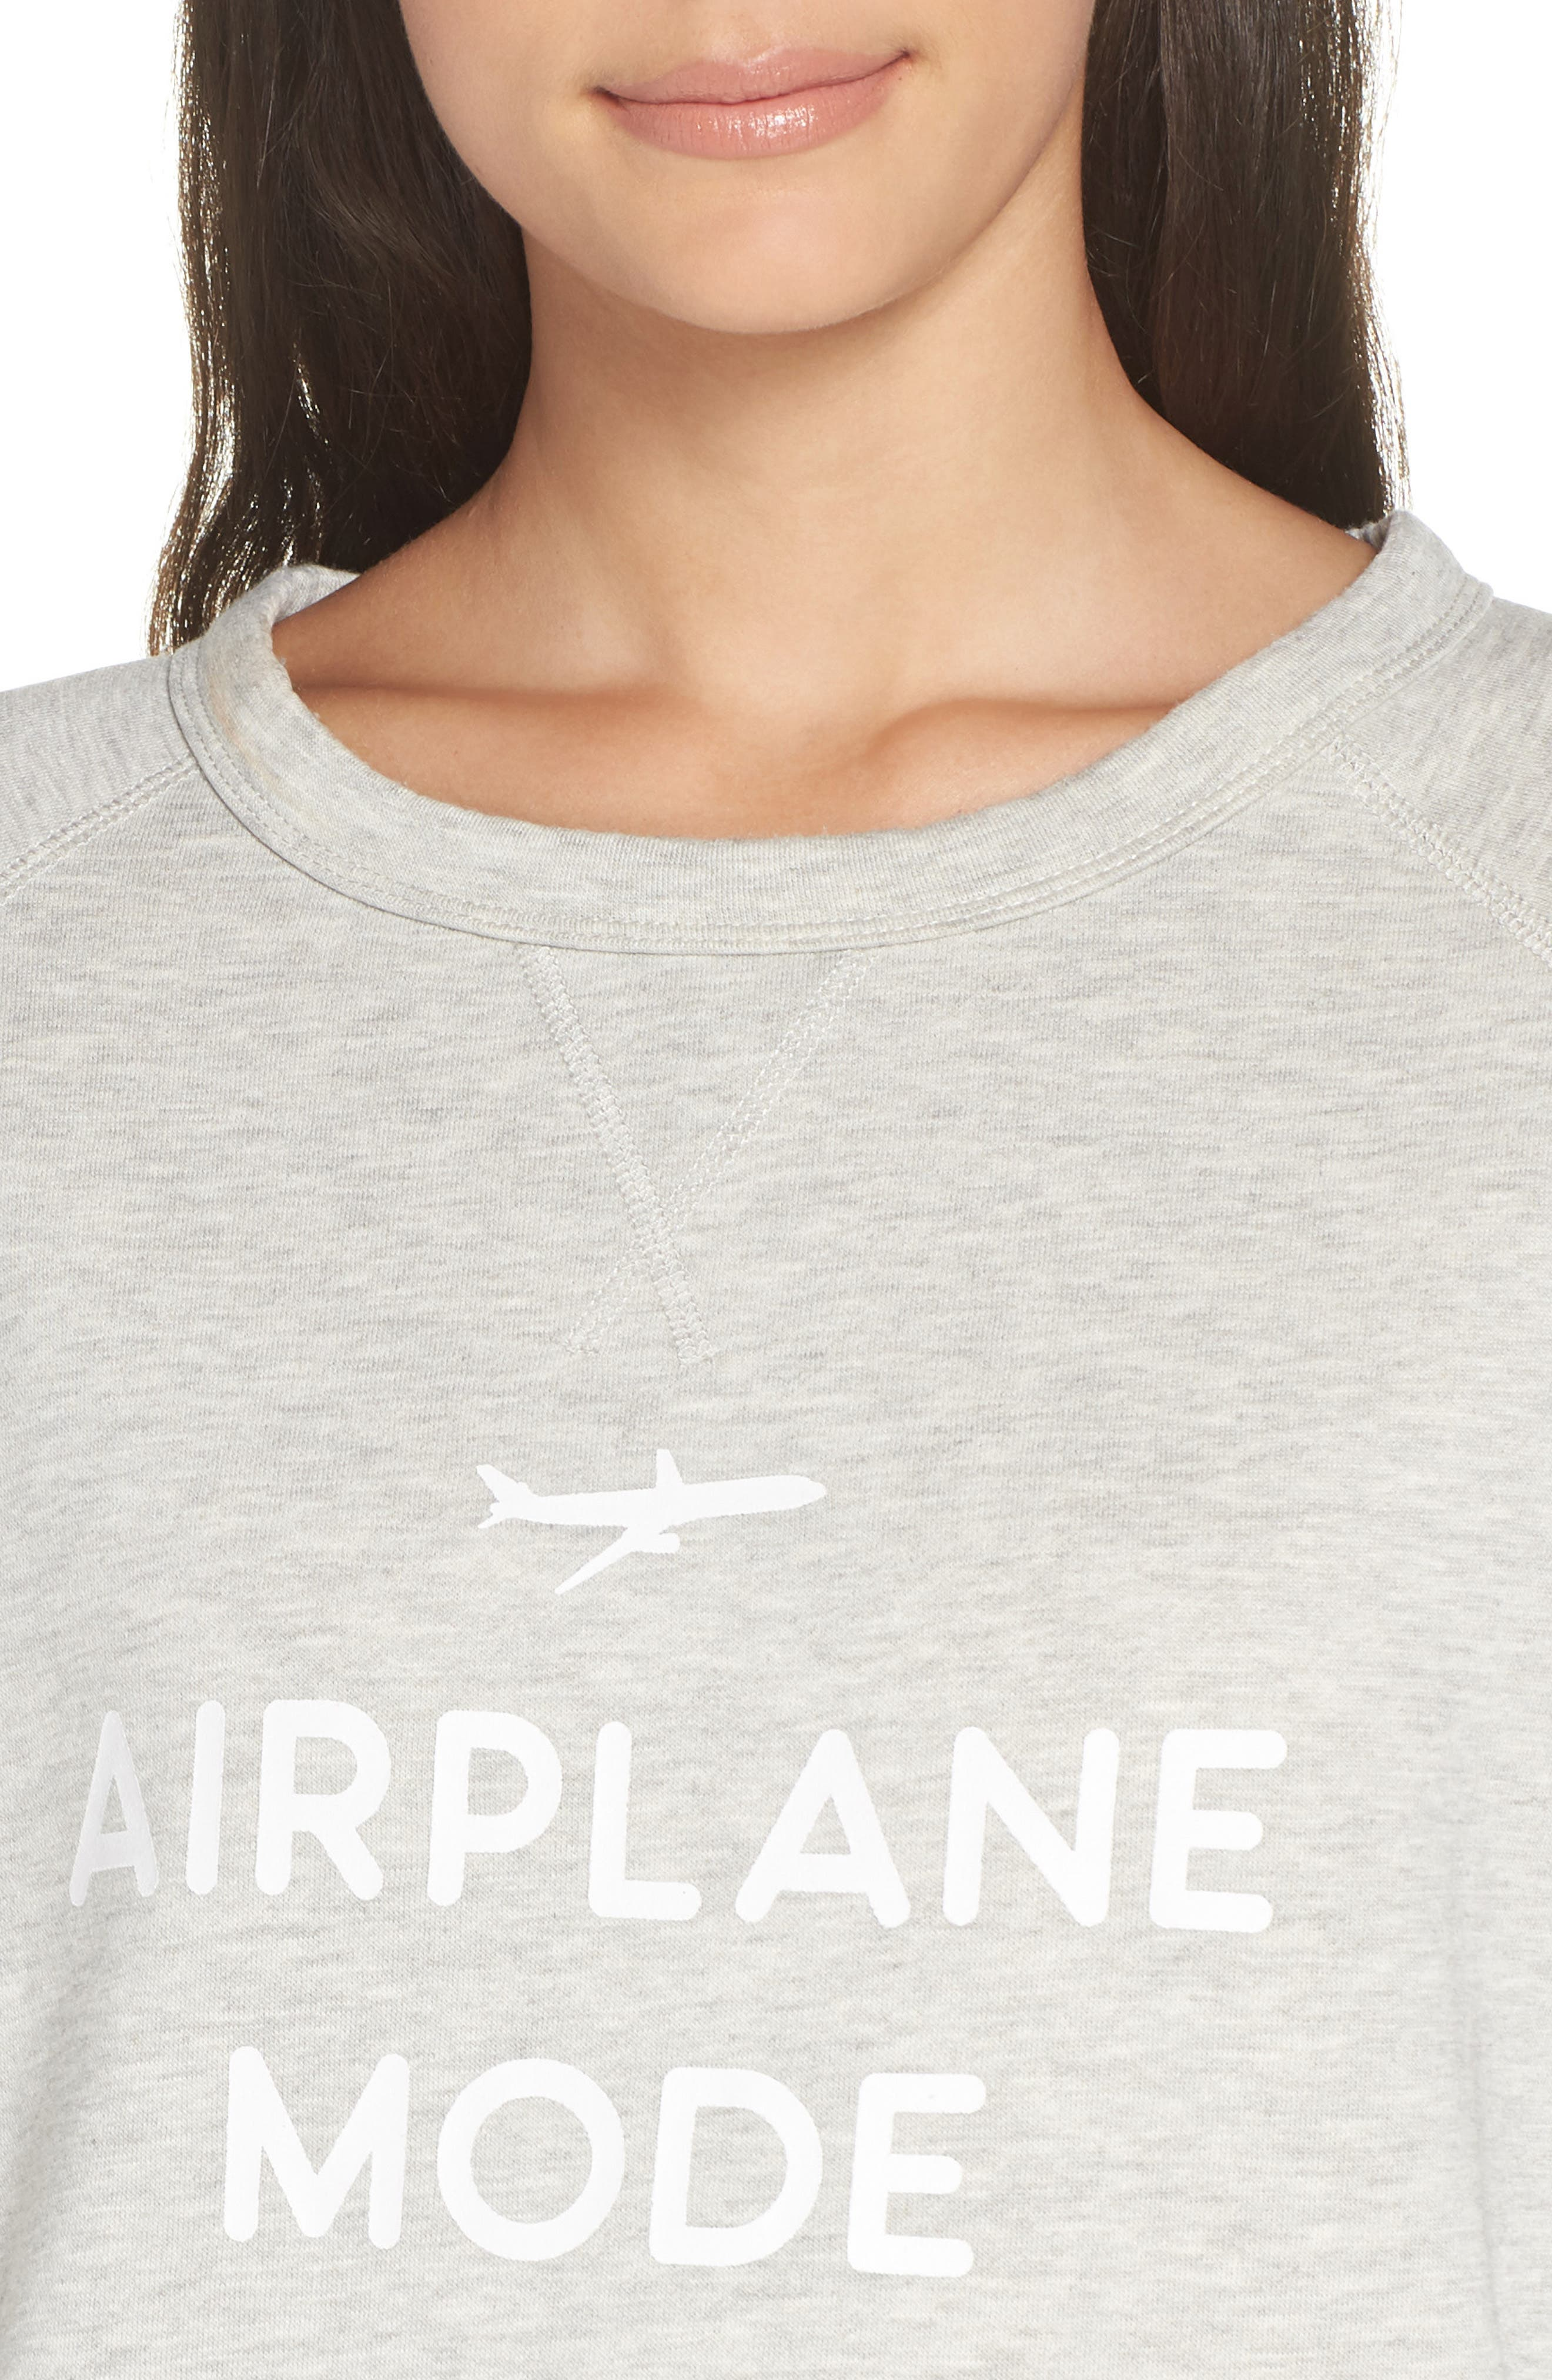 Airplane Mode Cozy Lounge Sweatshirt,                             Alternate thumbnail 4, color,                             Pebble Heather